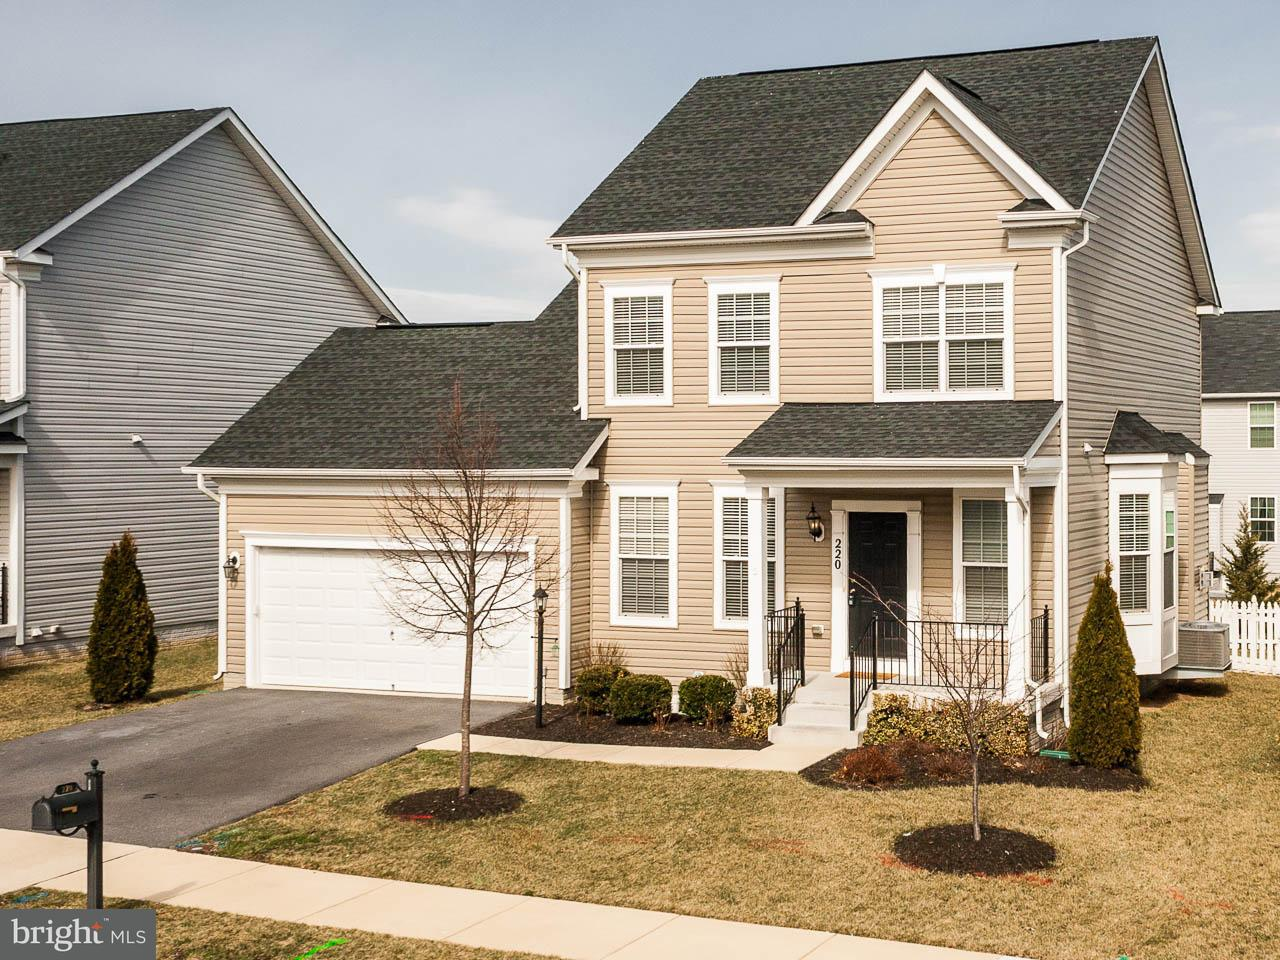 Other Residential for Rent at 220 Centennial Dr Stephenson, Virginia 22656 United States